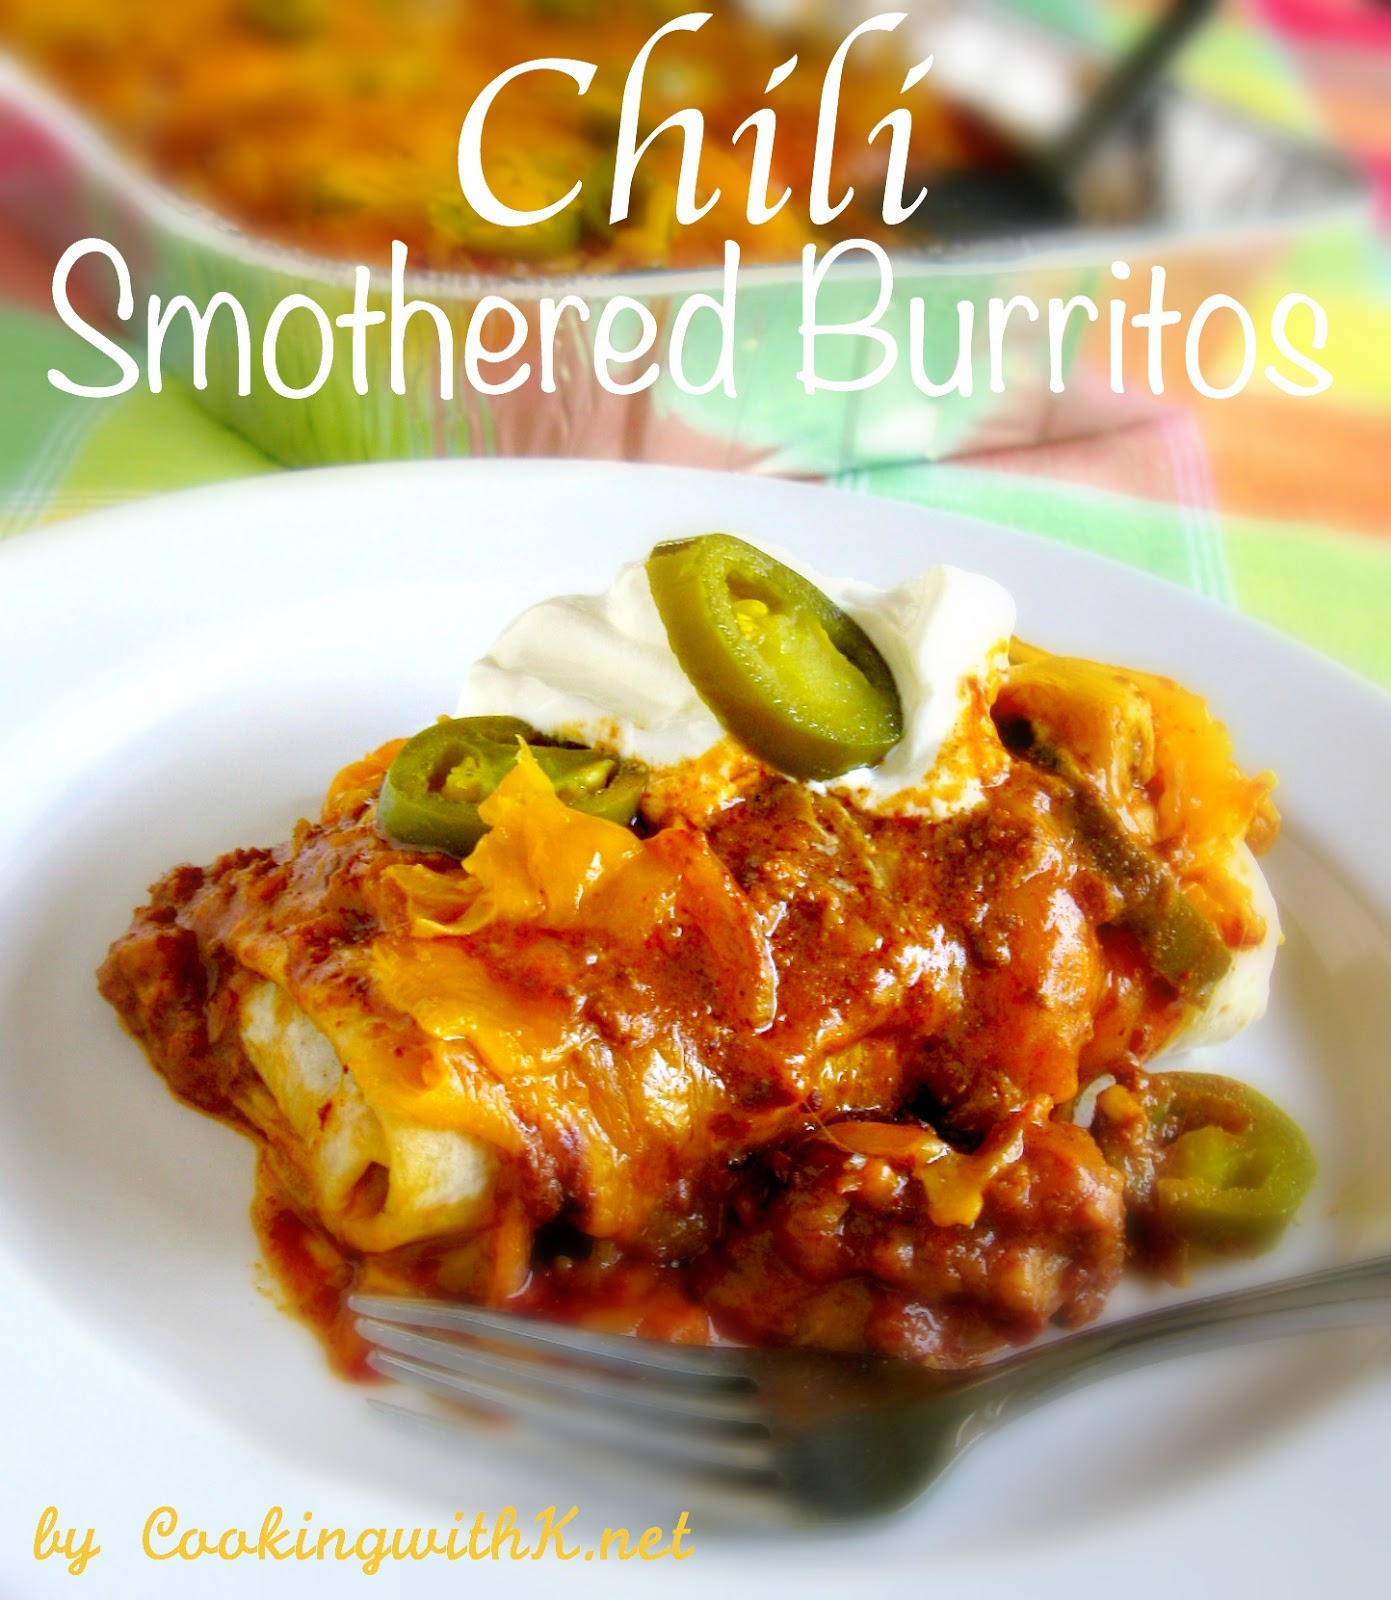 how to make smothered breakfast burritos